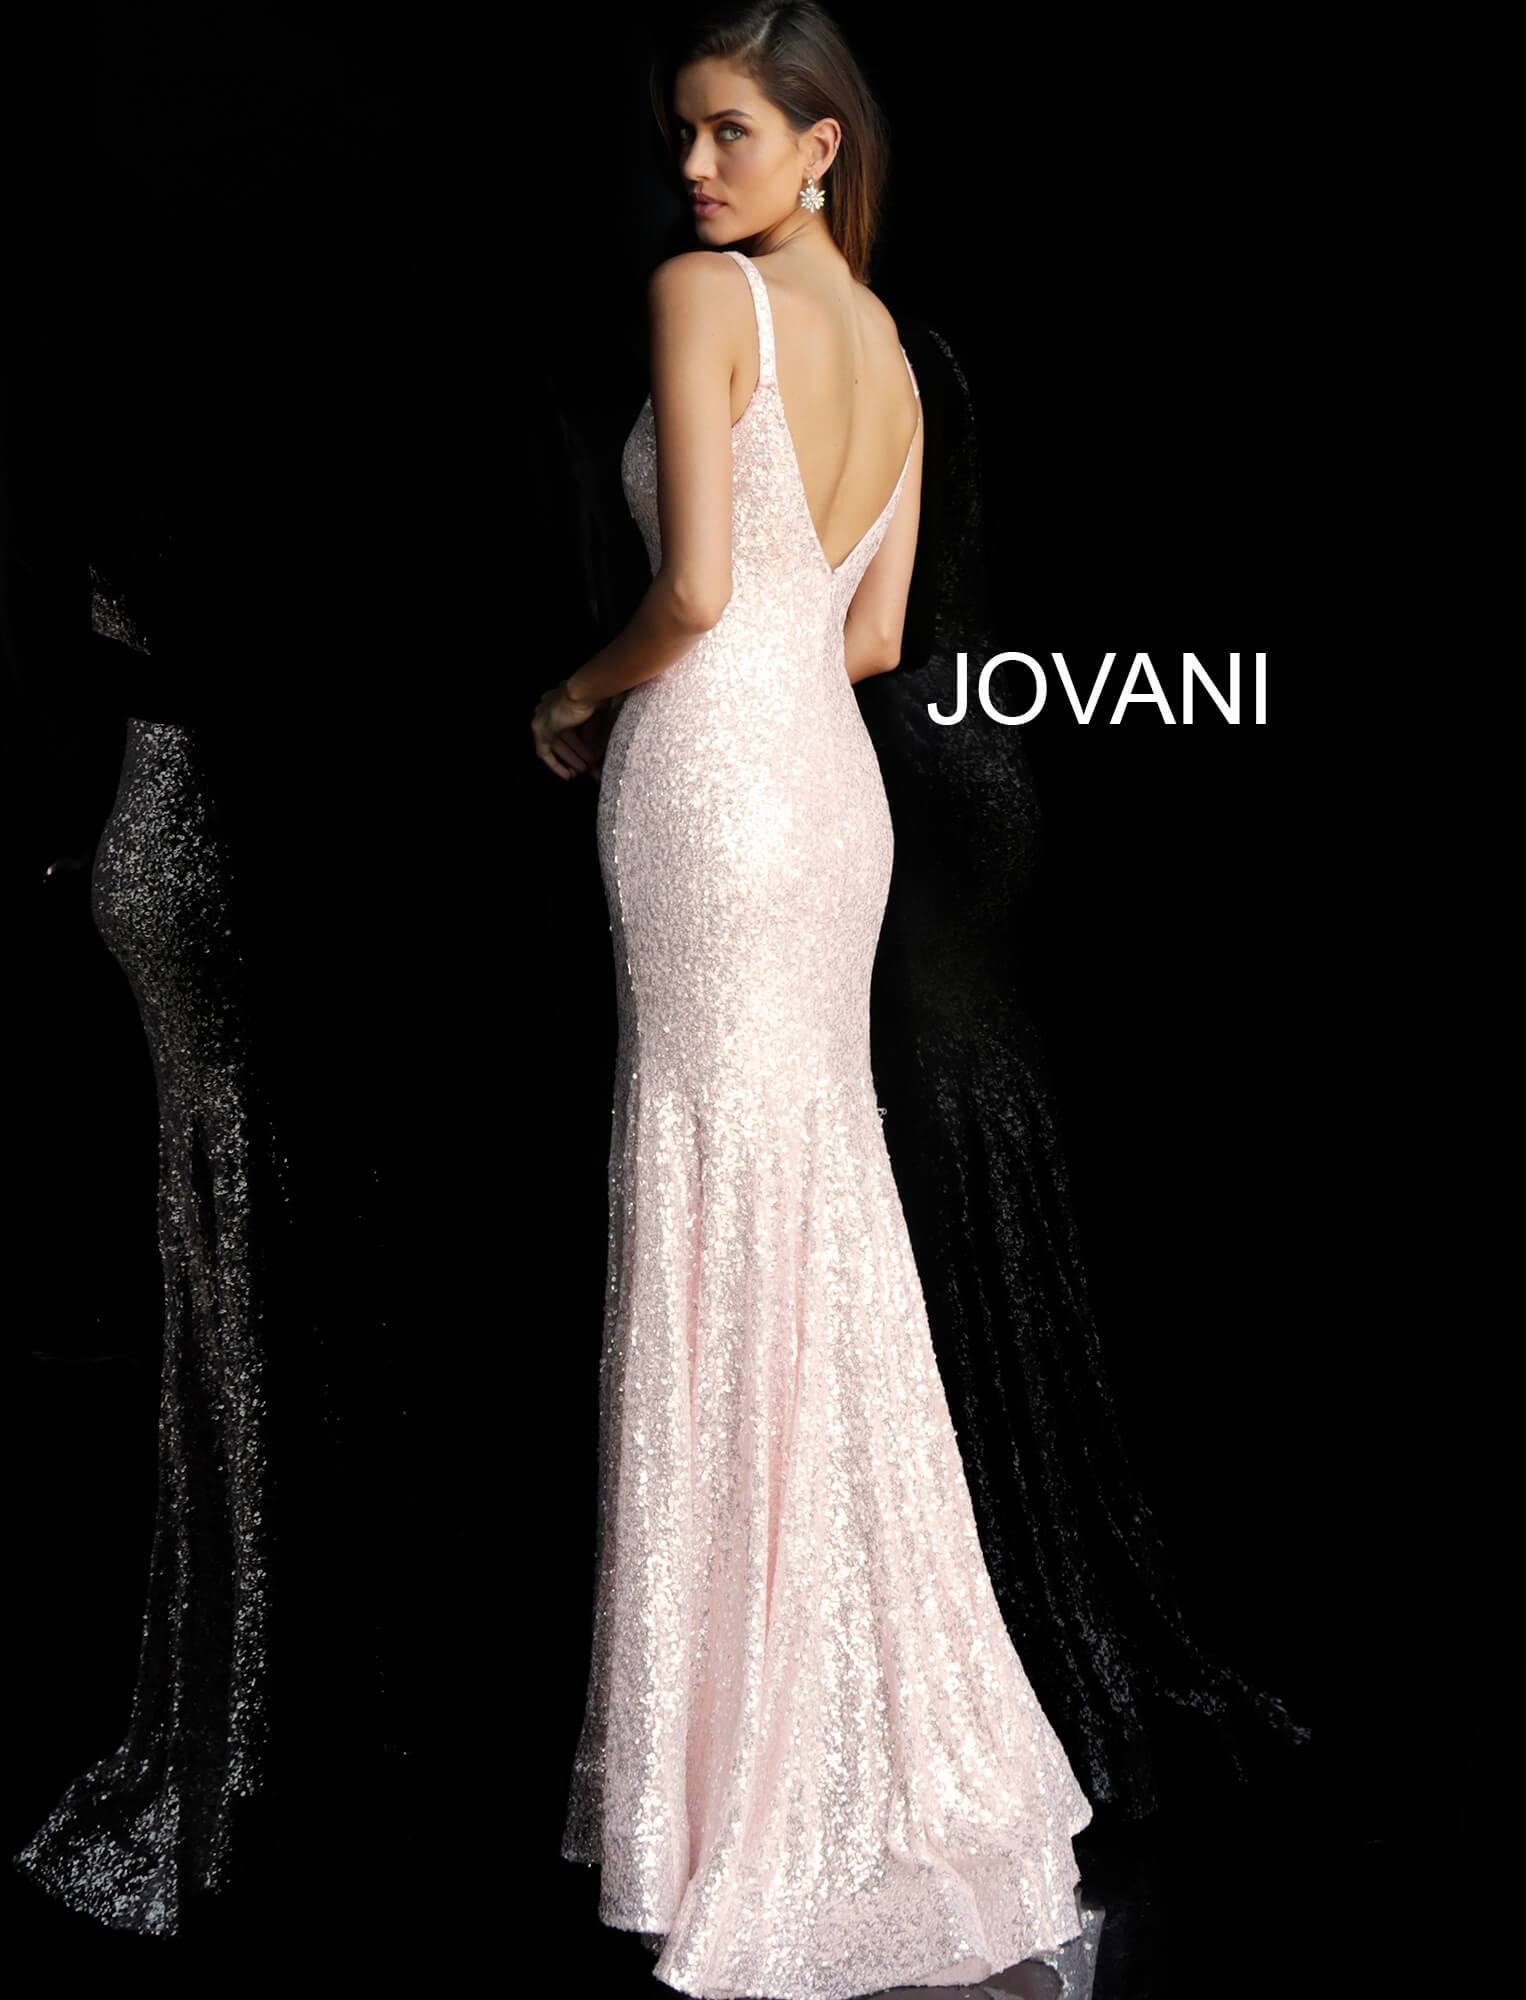 Jovani Blush Sequin Gown - Gissings Boutique